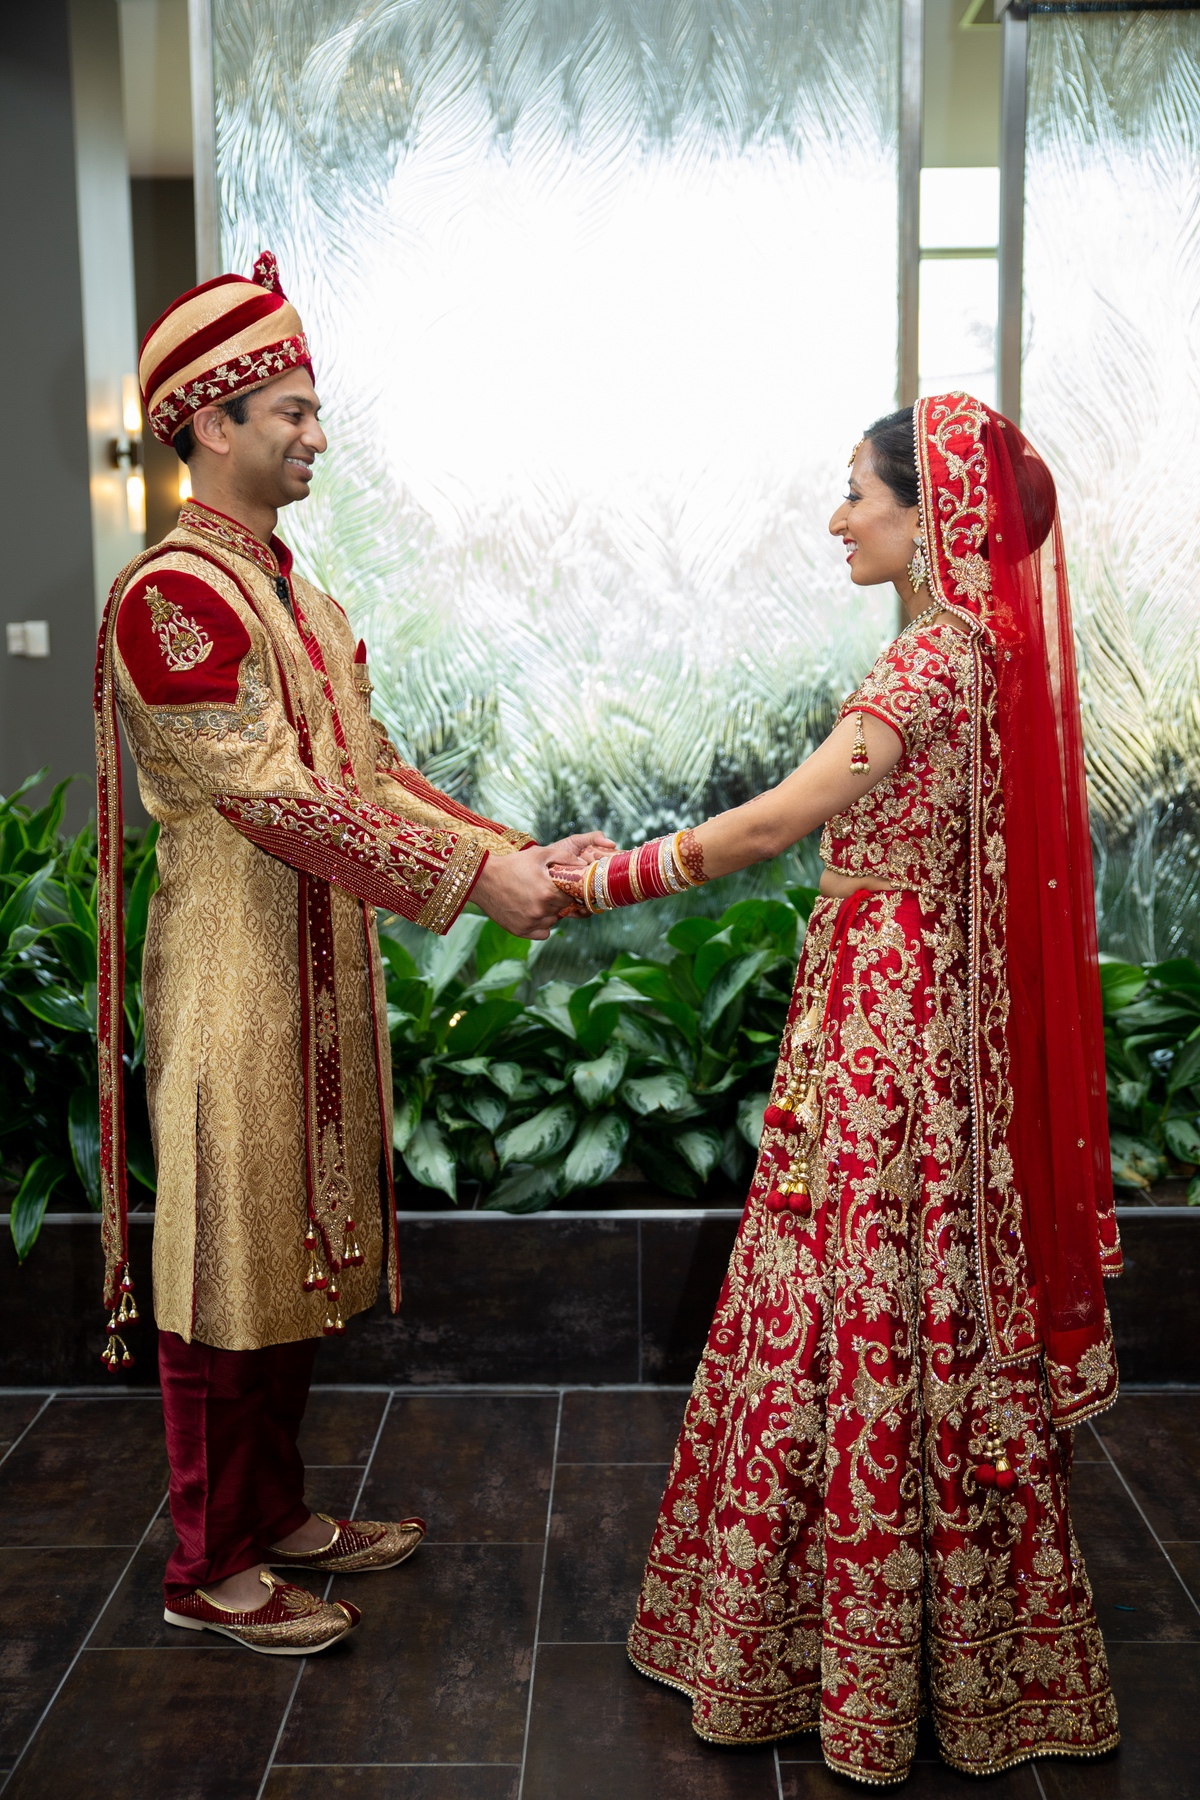 Le Cape Weddings - South Asian Wedding - Chicago Wedding Photographer P&V-32.jpg